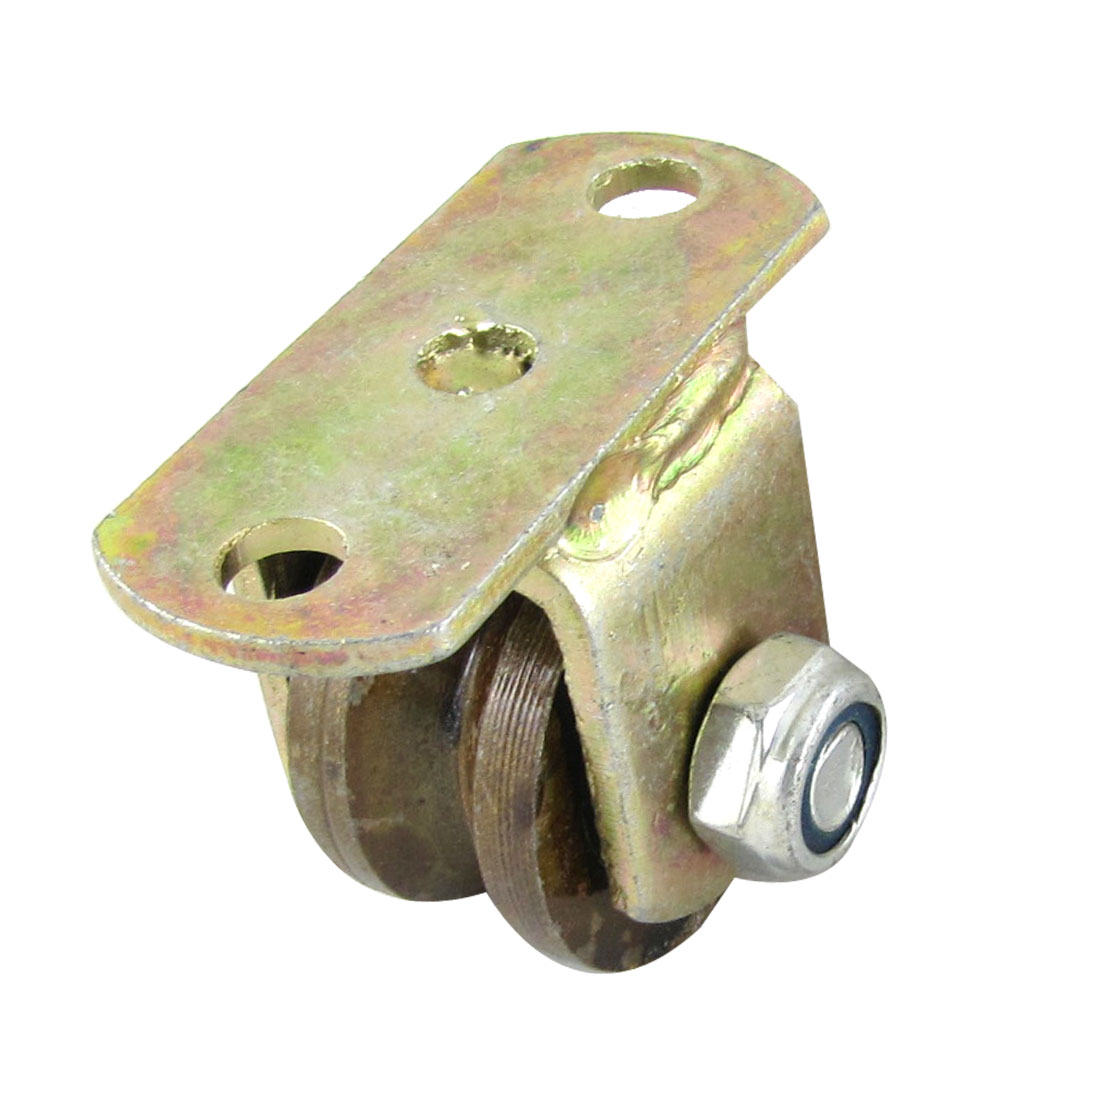 Metal-Plate-1-5-Diameter-Wheel-V-Grooved-Rigid-Caster